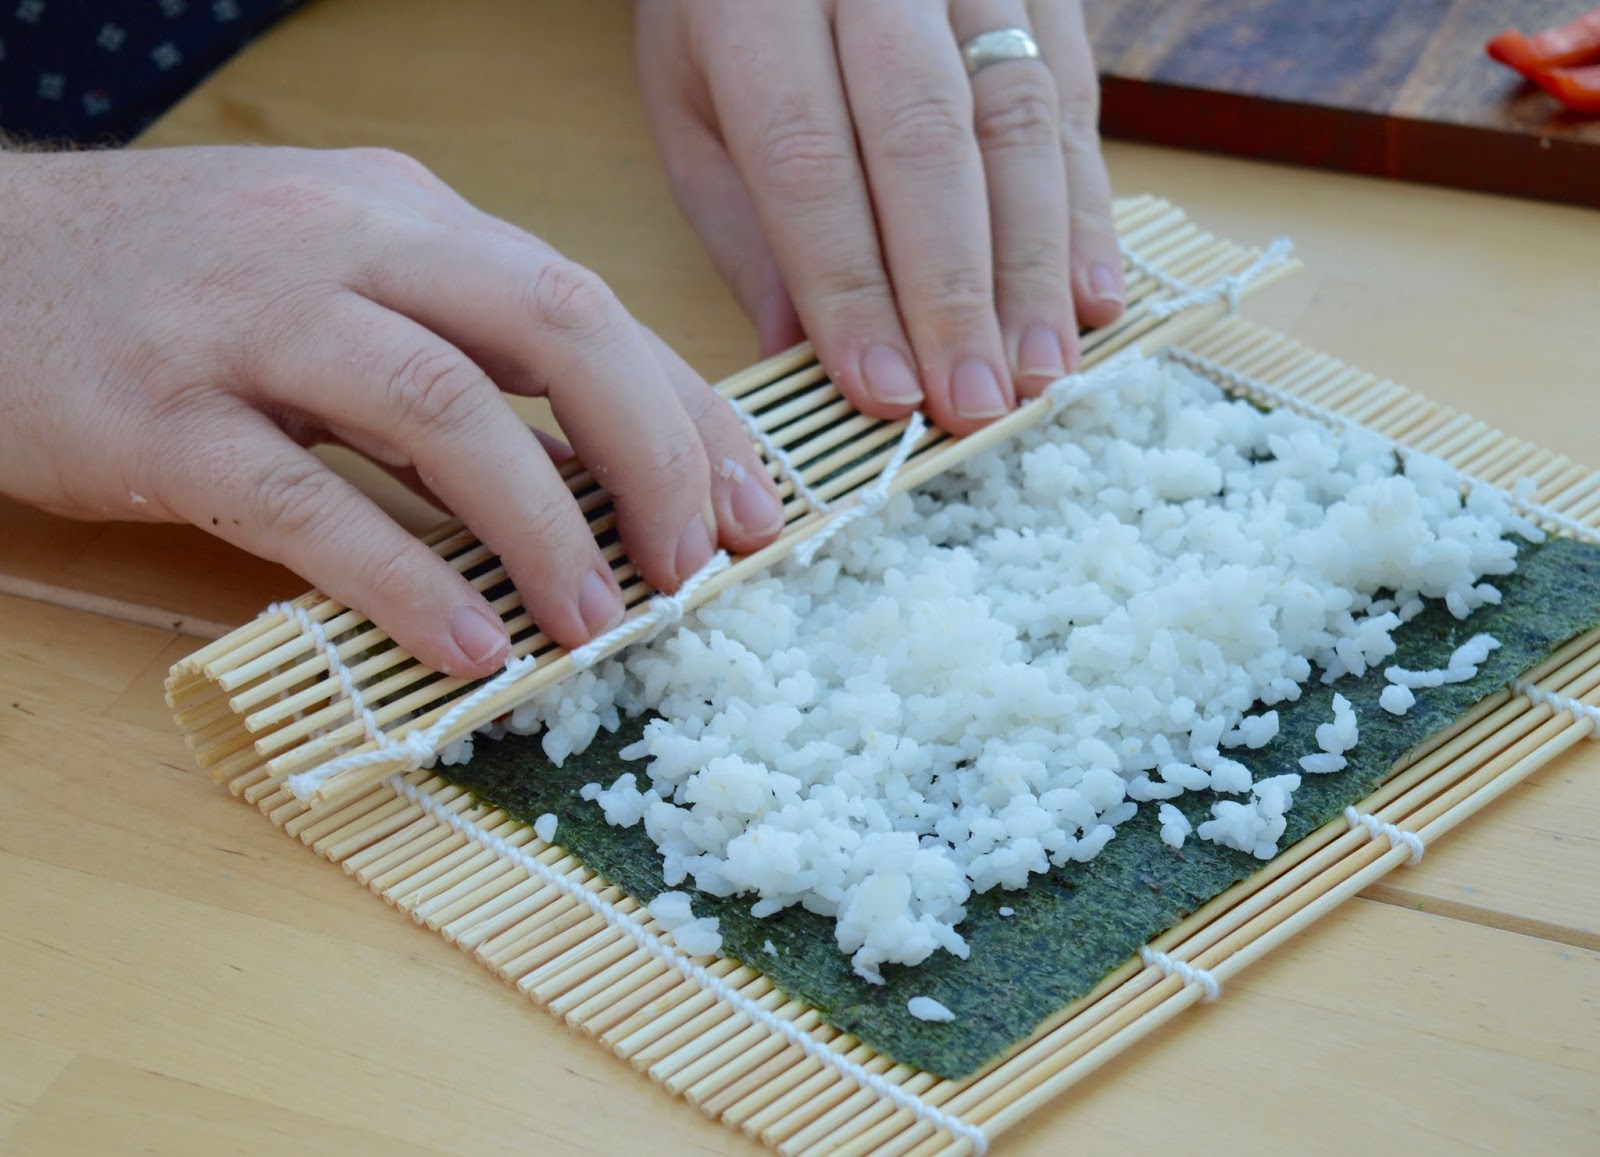 Sushi Making With Kids - A Tutorial for Beginners with Yutaka - using a sushi rolling mat